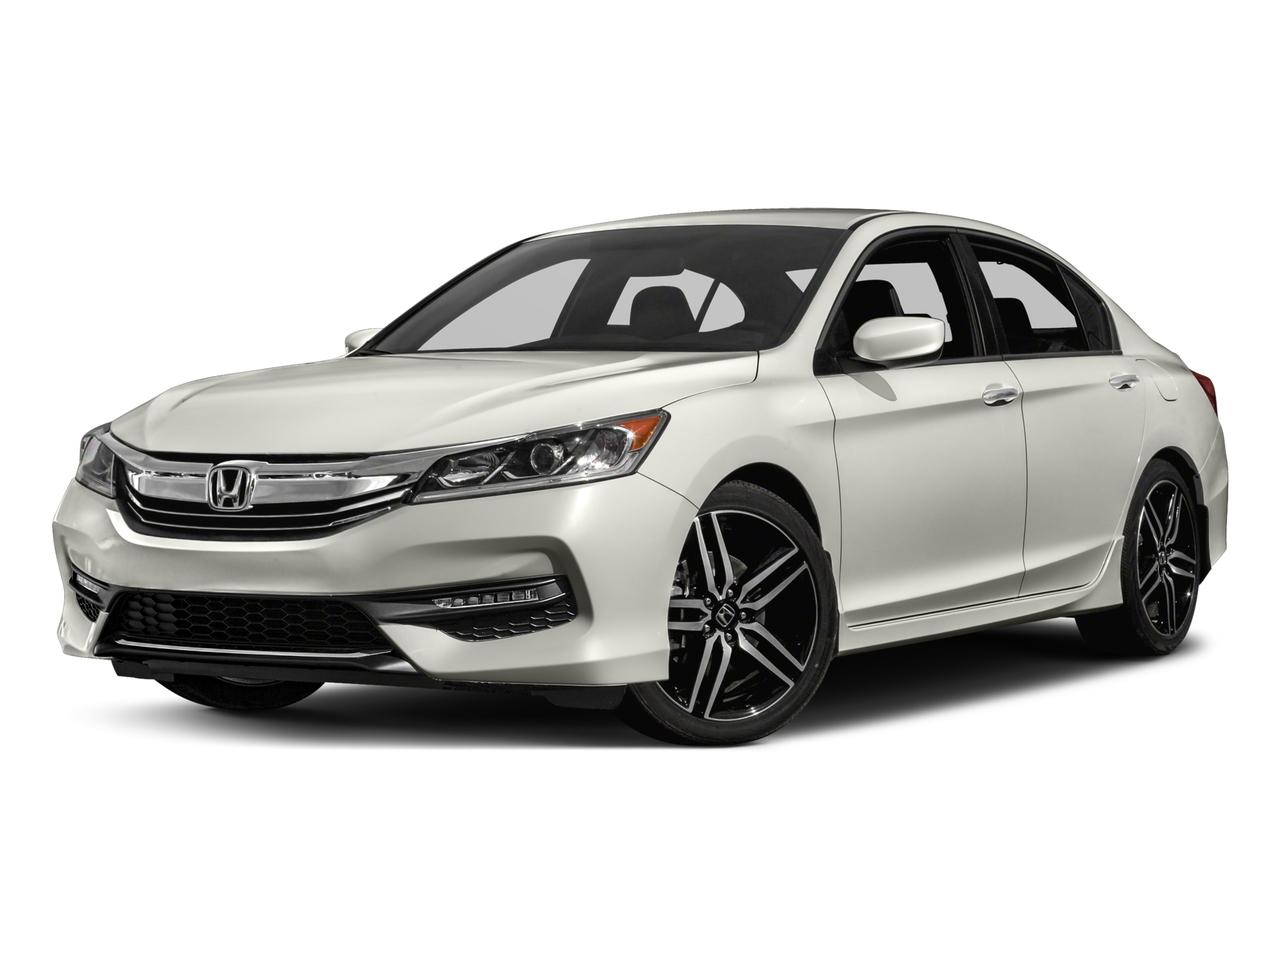 2017 Honda Accord Sedan Vehicle Photo in ANNAPOLIS, MD 21401